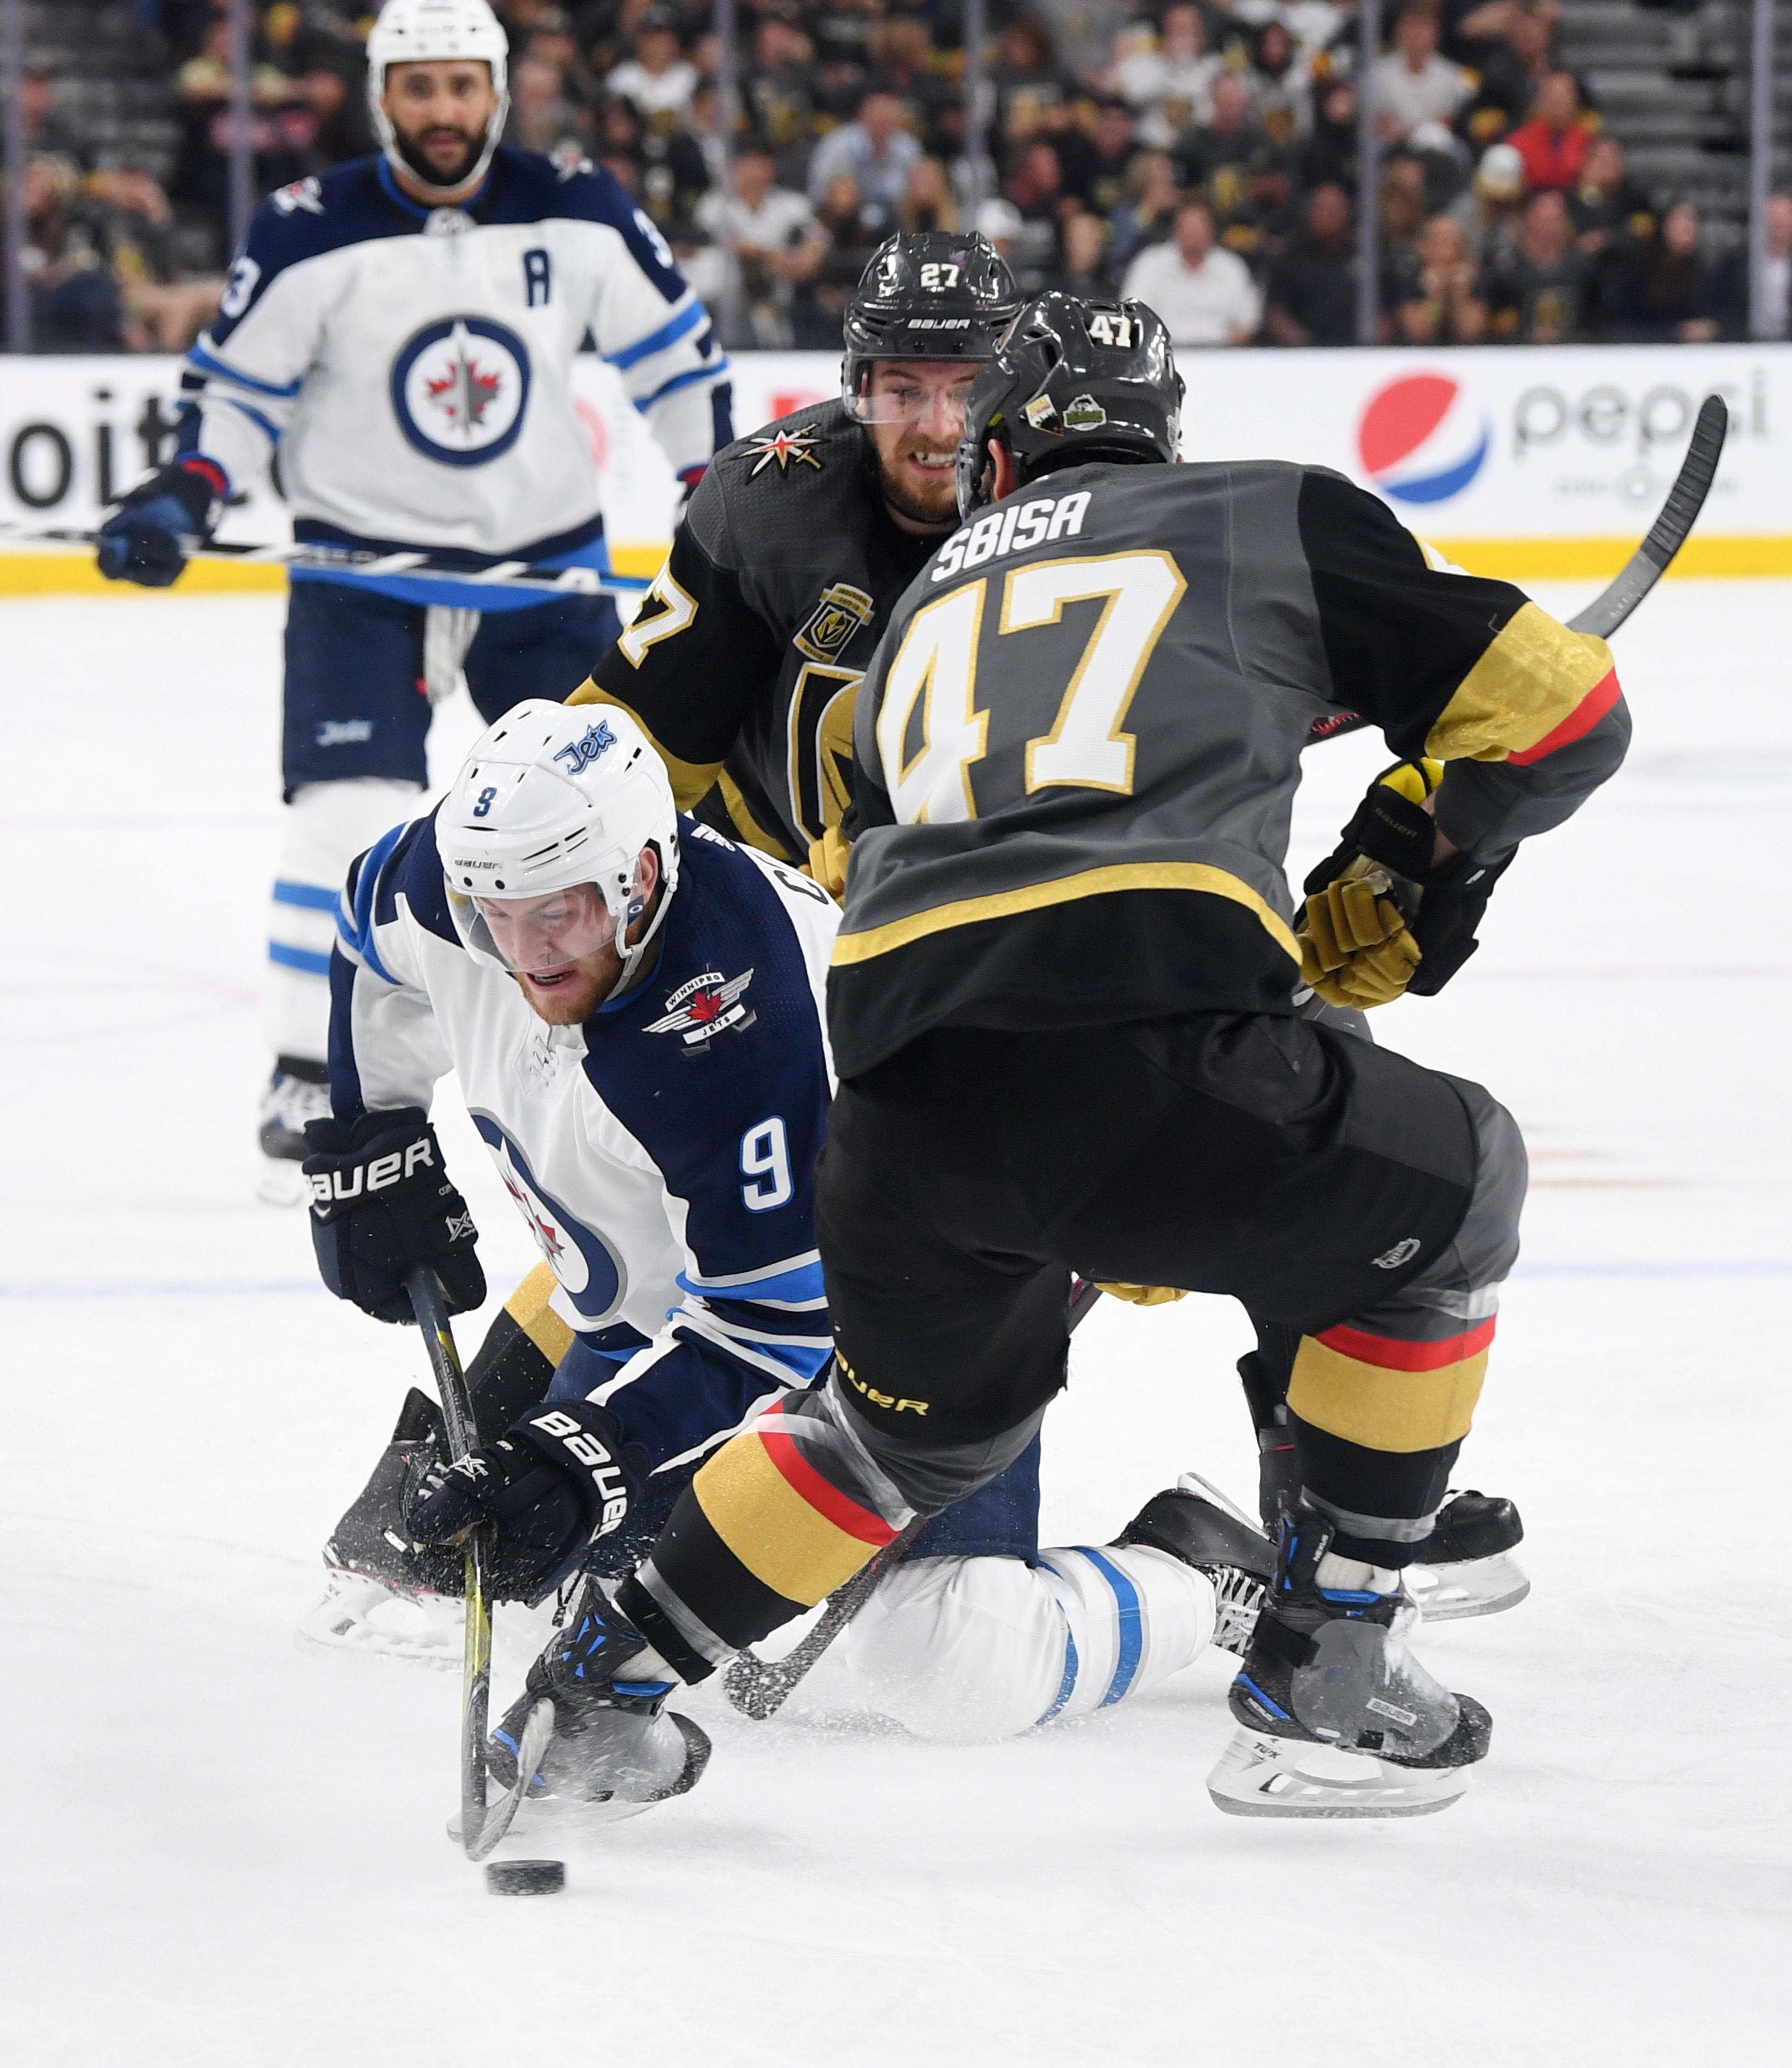 Winnipeg Jets center Andrew Copp (9) falls to the ice while trying to get a pass off around Vegas Golden Knights defenseman Luca Sbisa (47) during Game 3 of their NHL hockey Western Conference Final game Wednesday, May 16, 2018, at T-Mobile Arena. CREDIT: Sam Morris/Las Vegas News Bureau